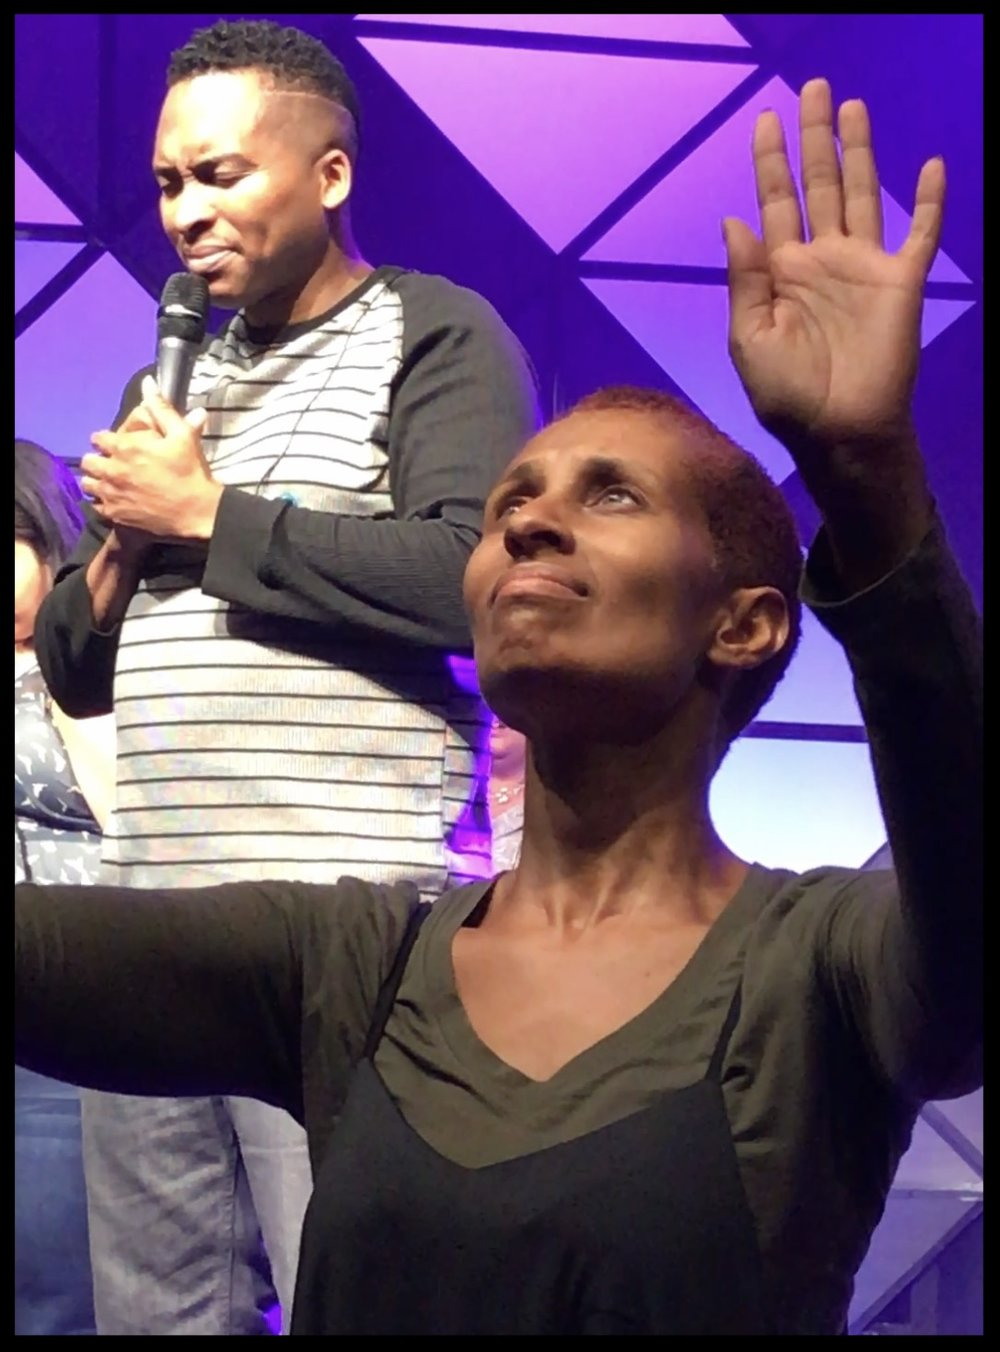 Felicity dancing with Karitos' Christian Arts Association @ one of their unity worship nights in Chicago.